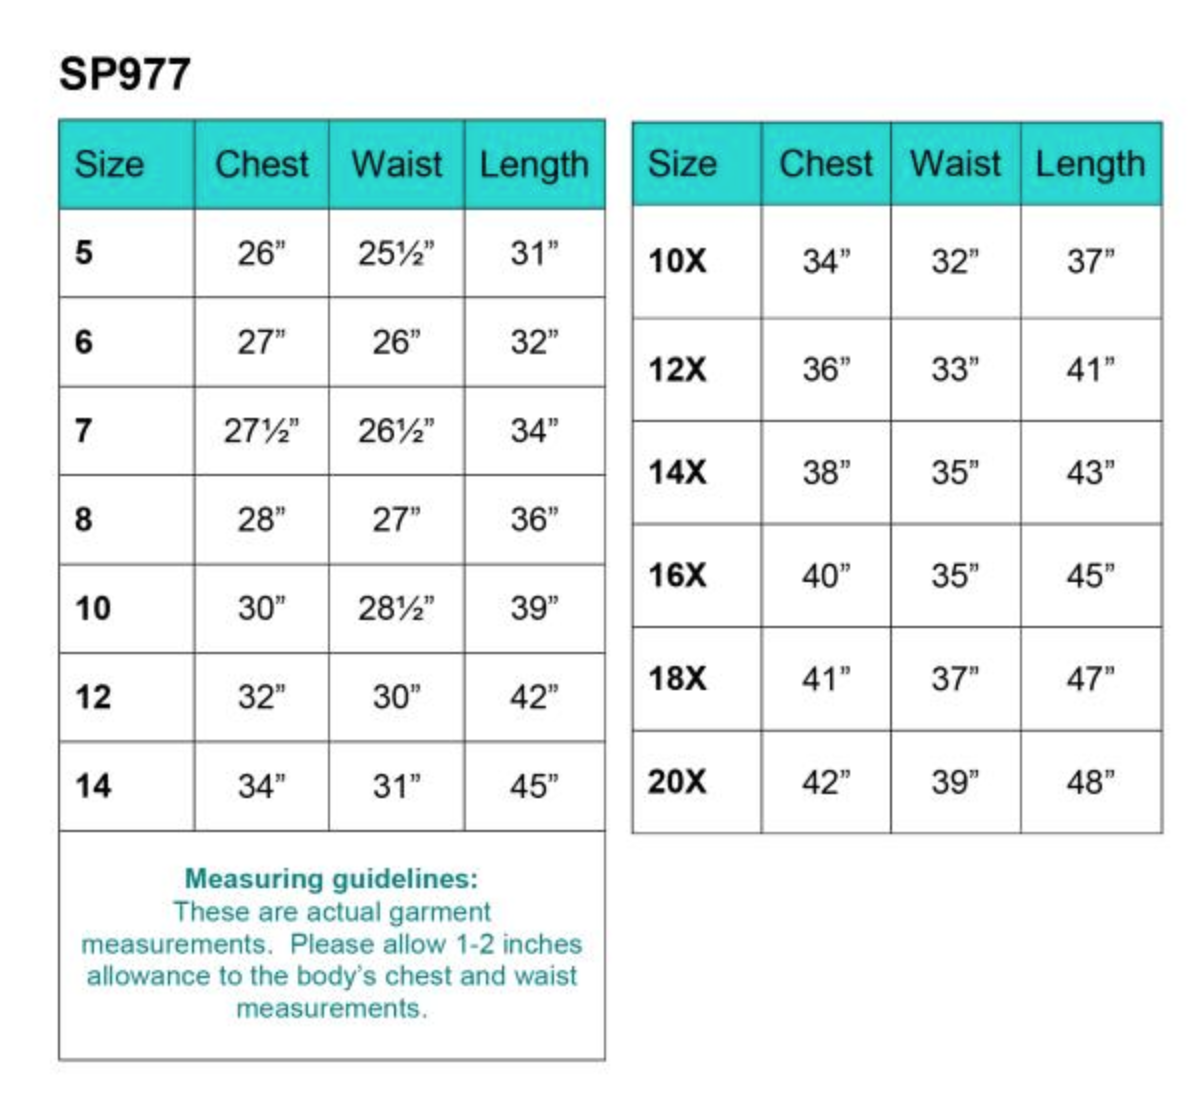 sizing-chart-sp977.png